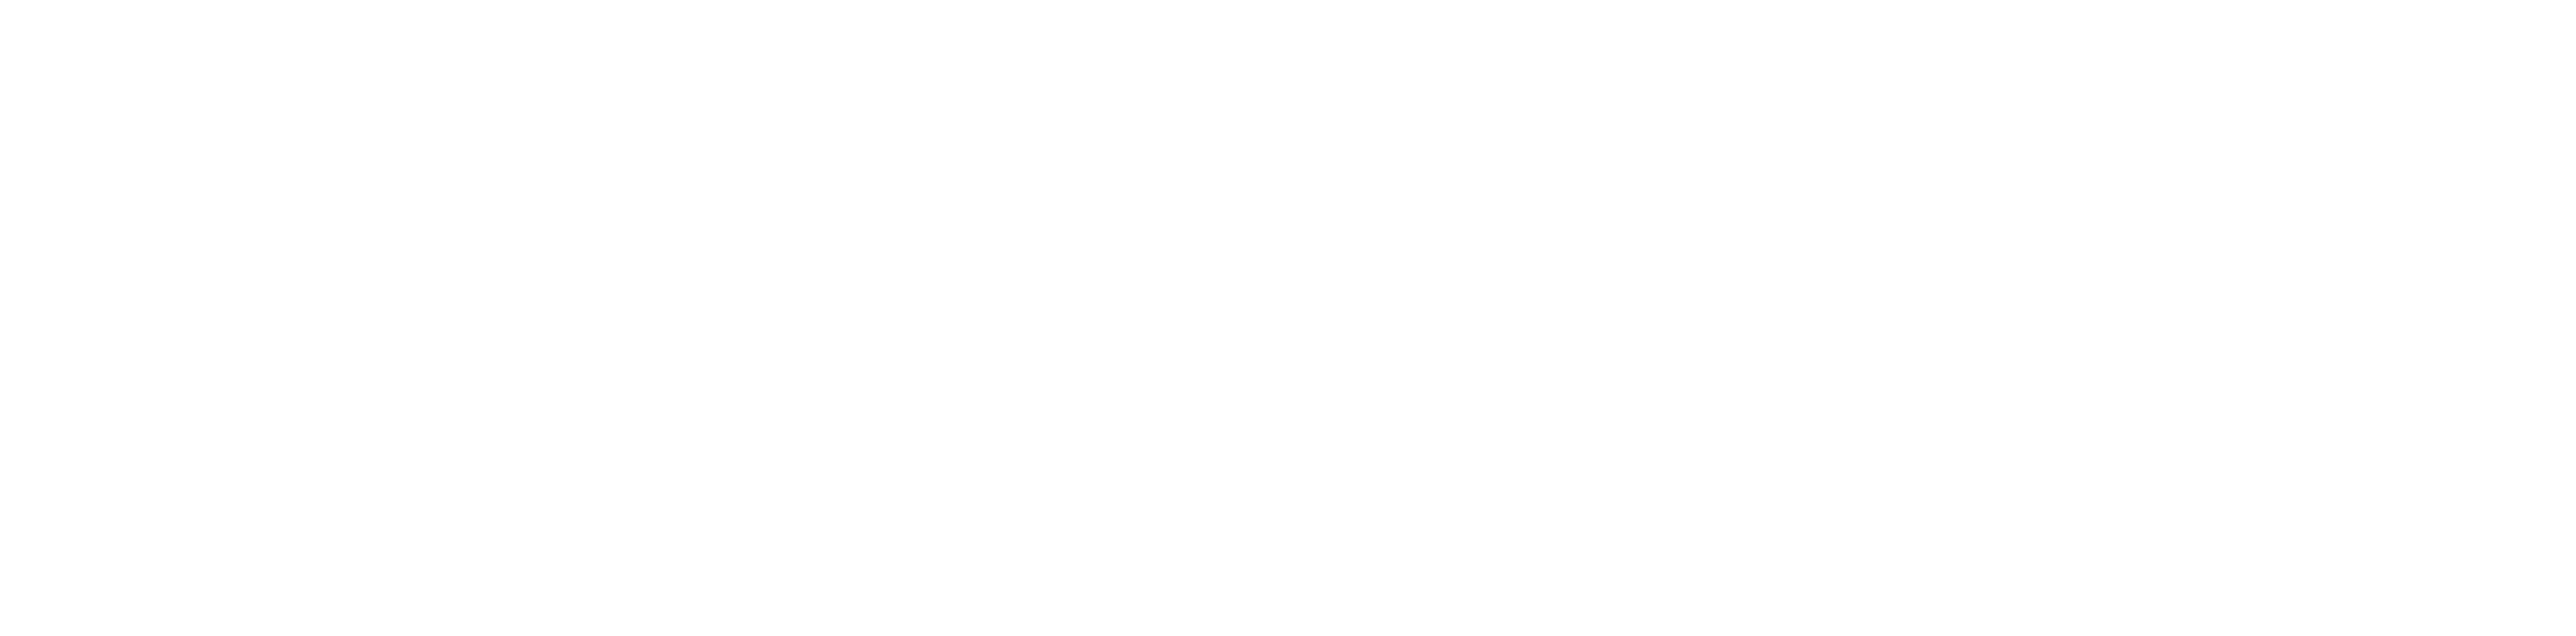 mobile-donation-process